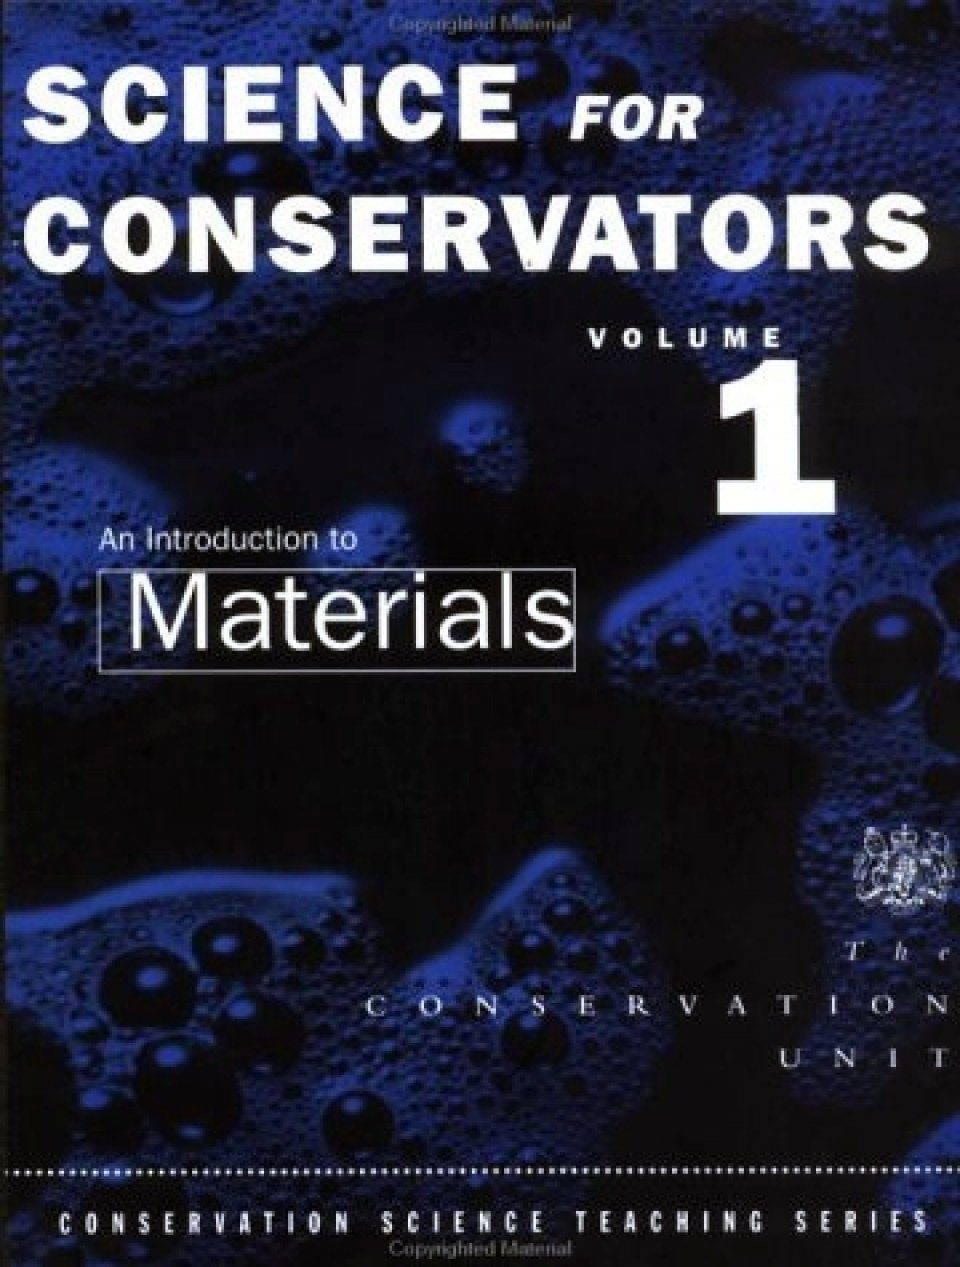 Science for Conservators Series, Volume 1